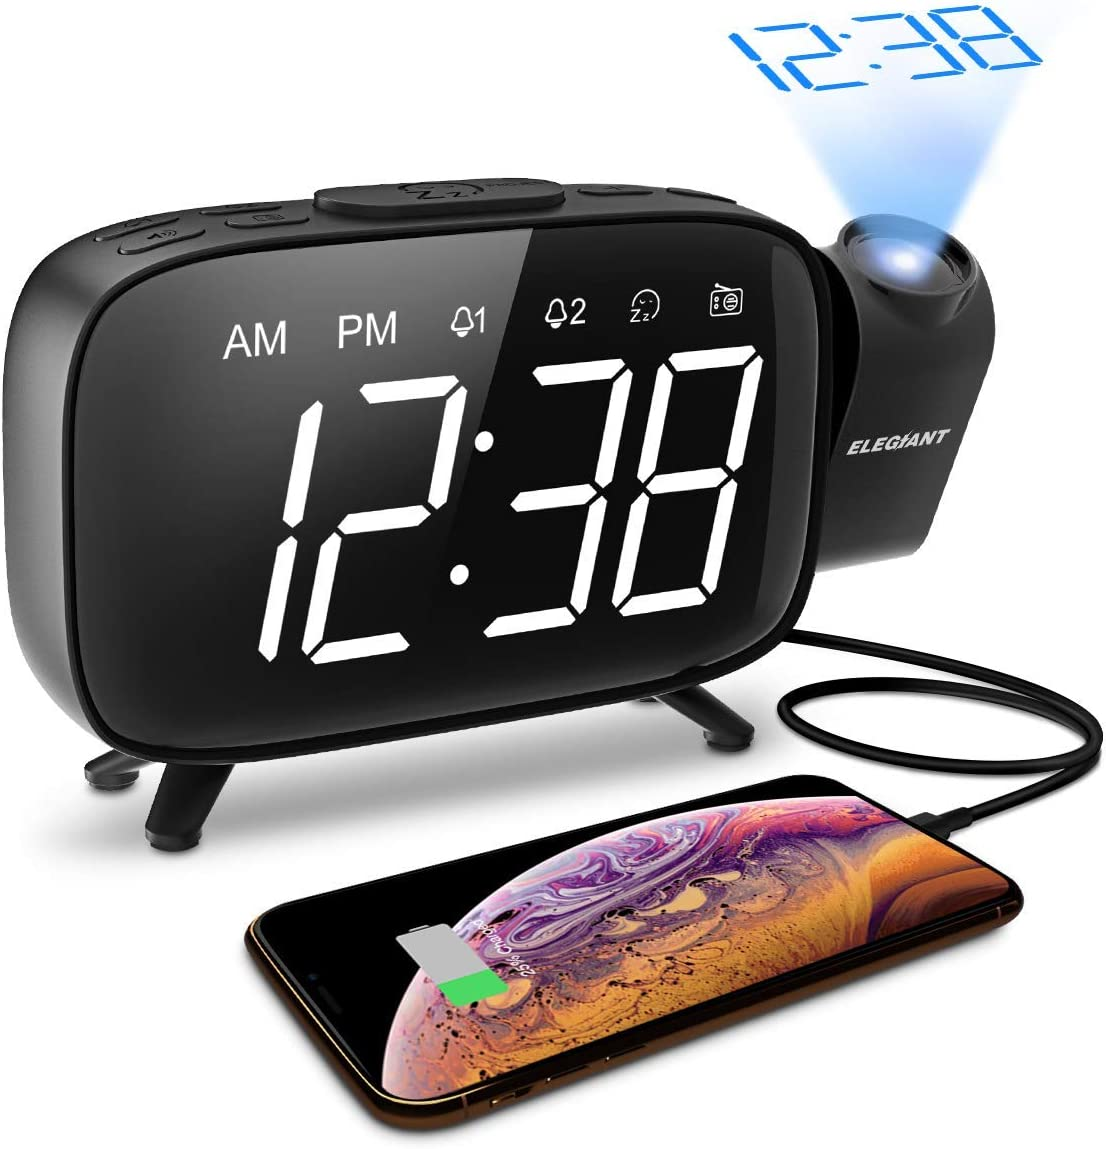 ELEGIANT Projection Alarm Clock, FM Radio Alarm Clock, 6.0 LED Curved-Screen Display with Dimmer 180 Adjustable Dual Alarm, 12 24Hour, Battery Backup, 7 Alarm Sounds with USB Charger for Bedroom